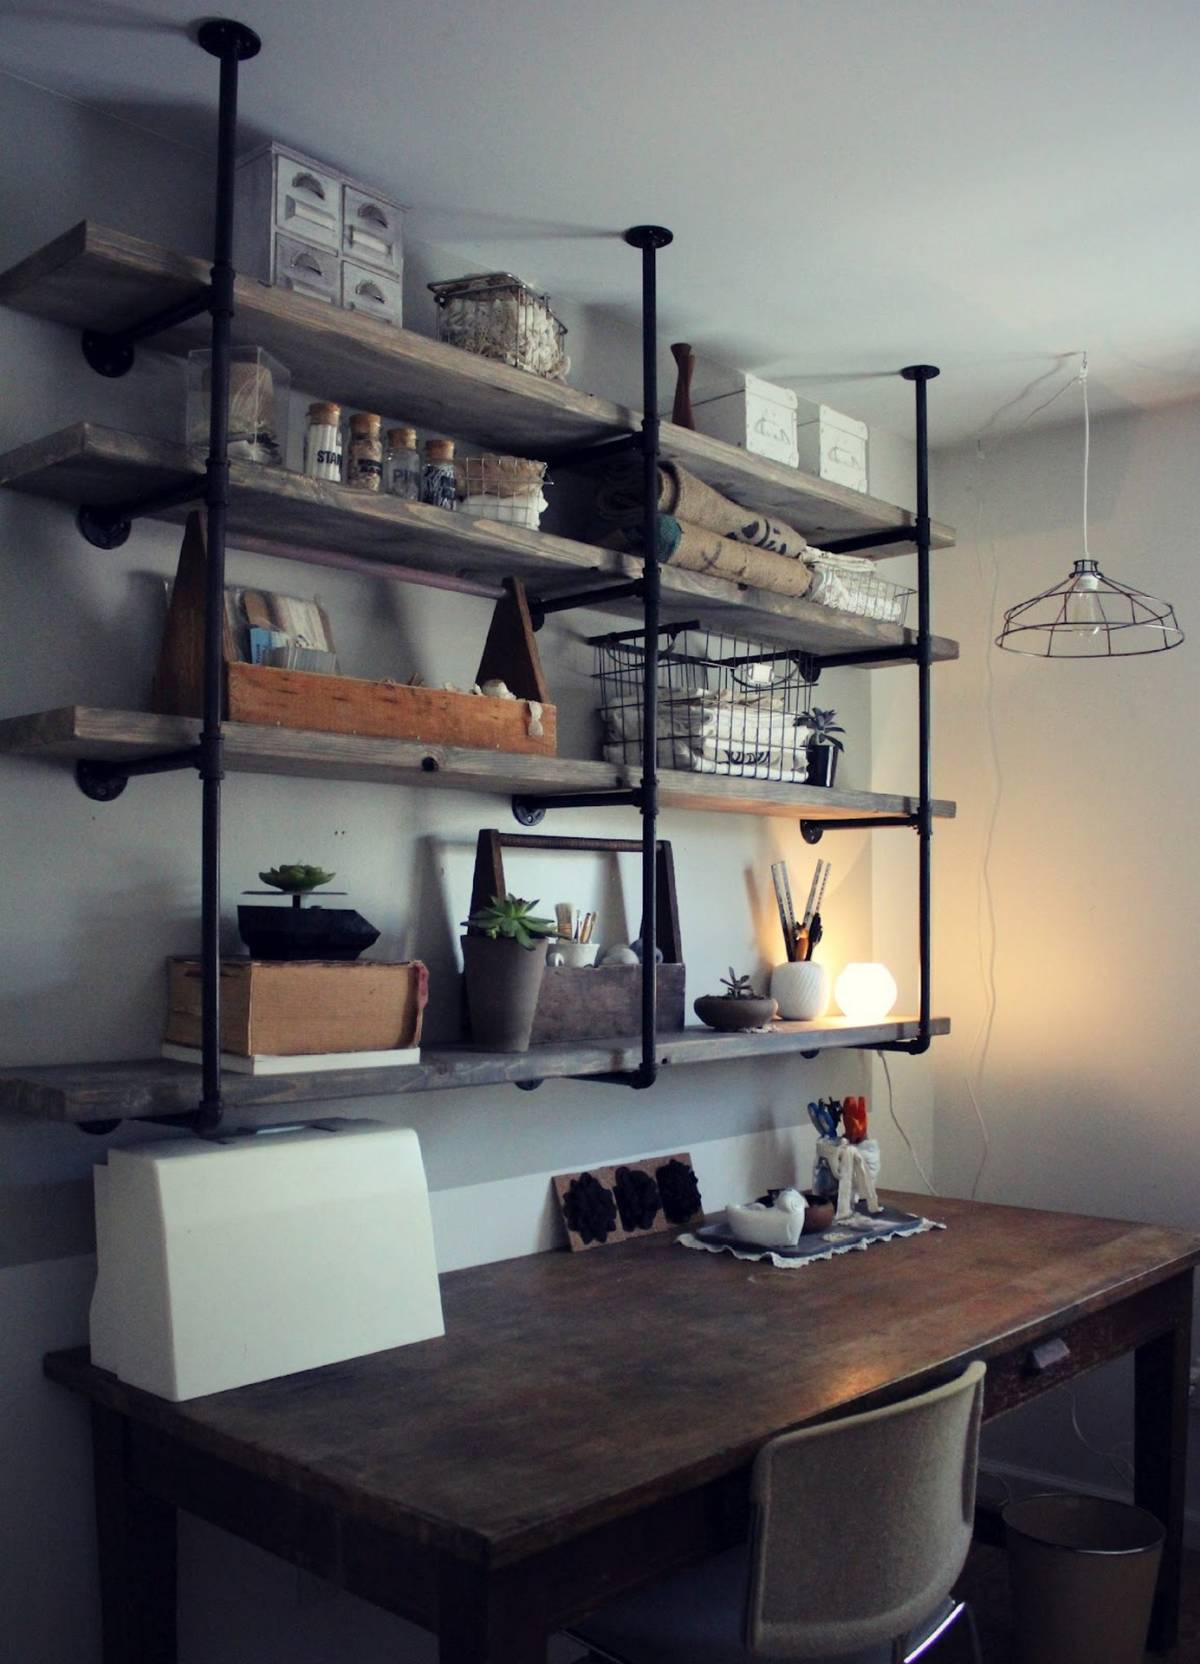 Example of industrial pipe shelving kitchen with vintage table